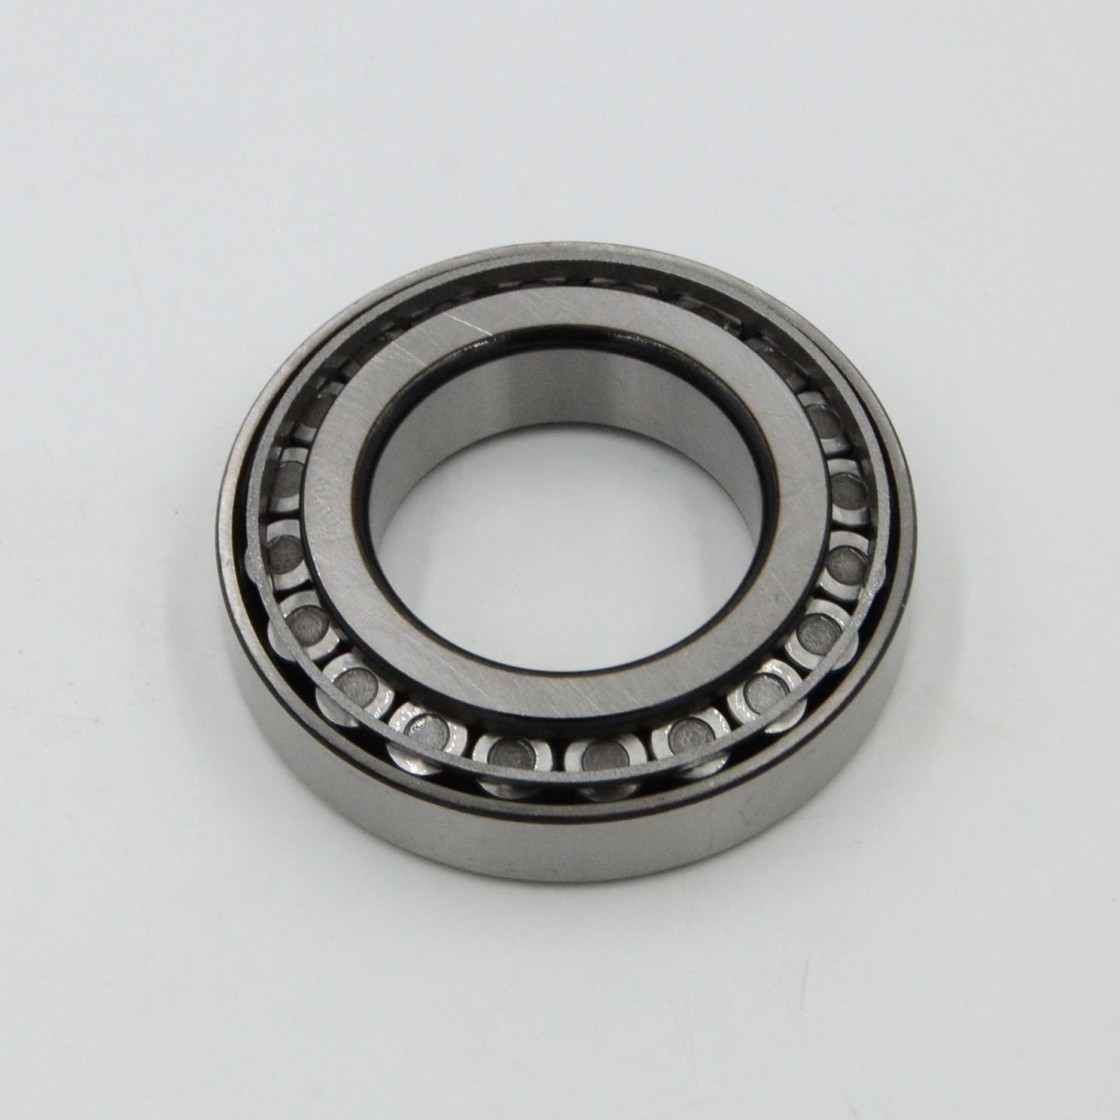 Bearing Original SKF Auto Motorcycle Spare Parts Tapered Roller Bearing Taper Roller Bearing (30203 30204 30205 30203 30207 30208 30209 30210 30211 30212)